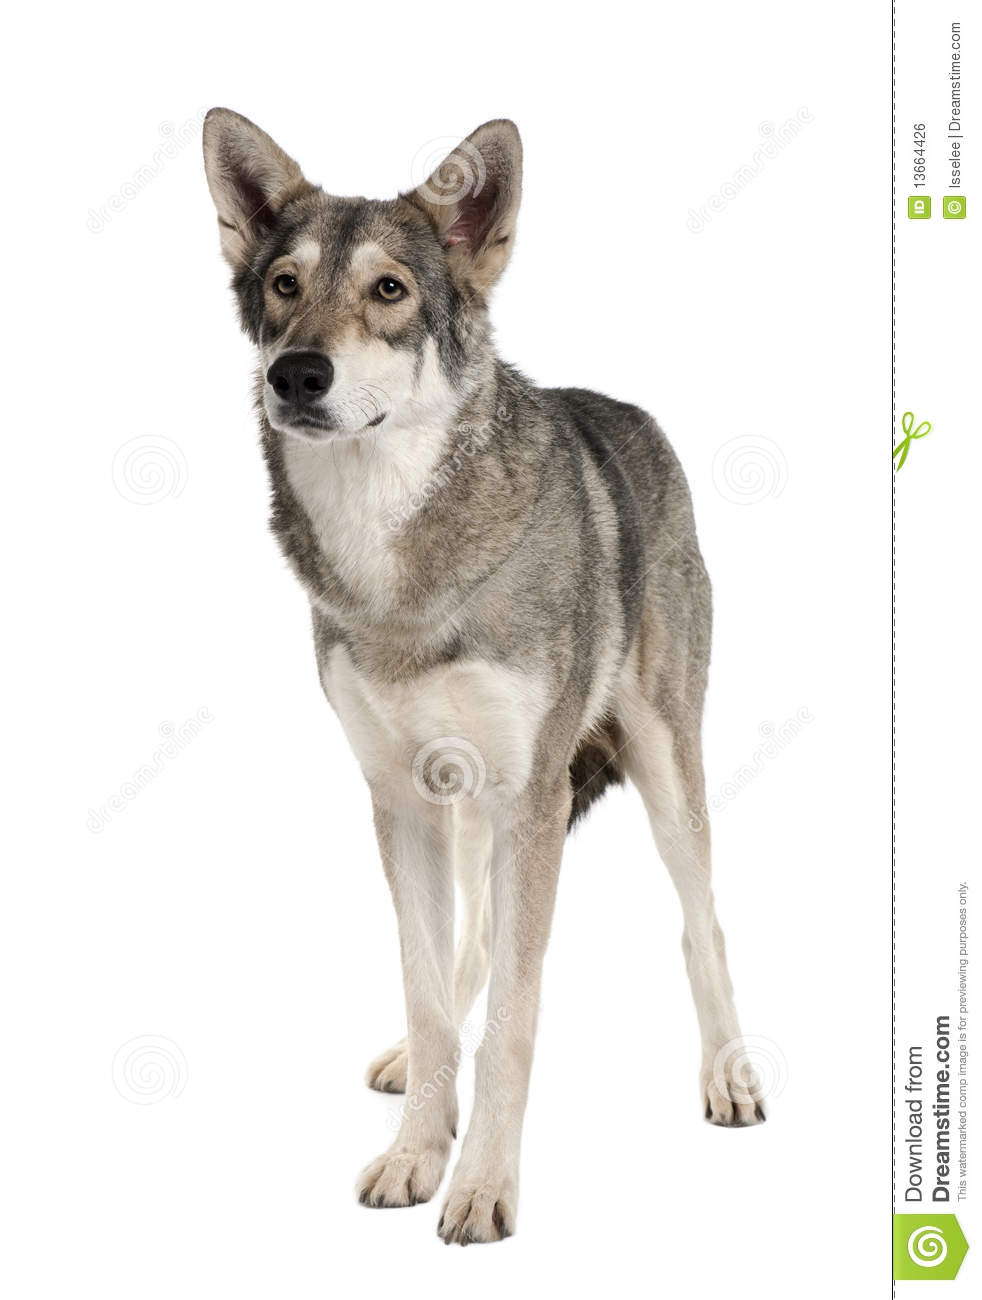 Front View Of Saarlooswolf Dog, Standing Royalty Free Stock Image ...